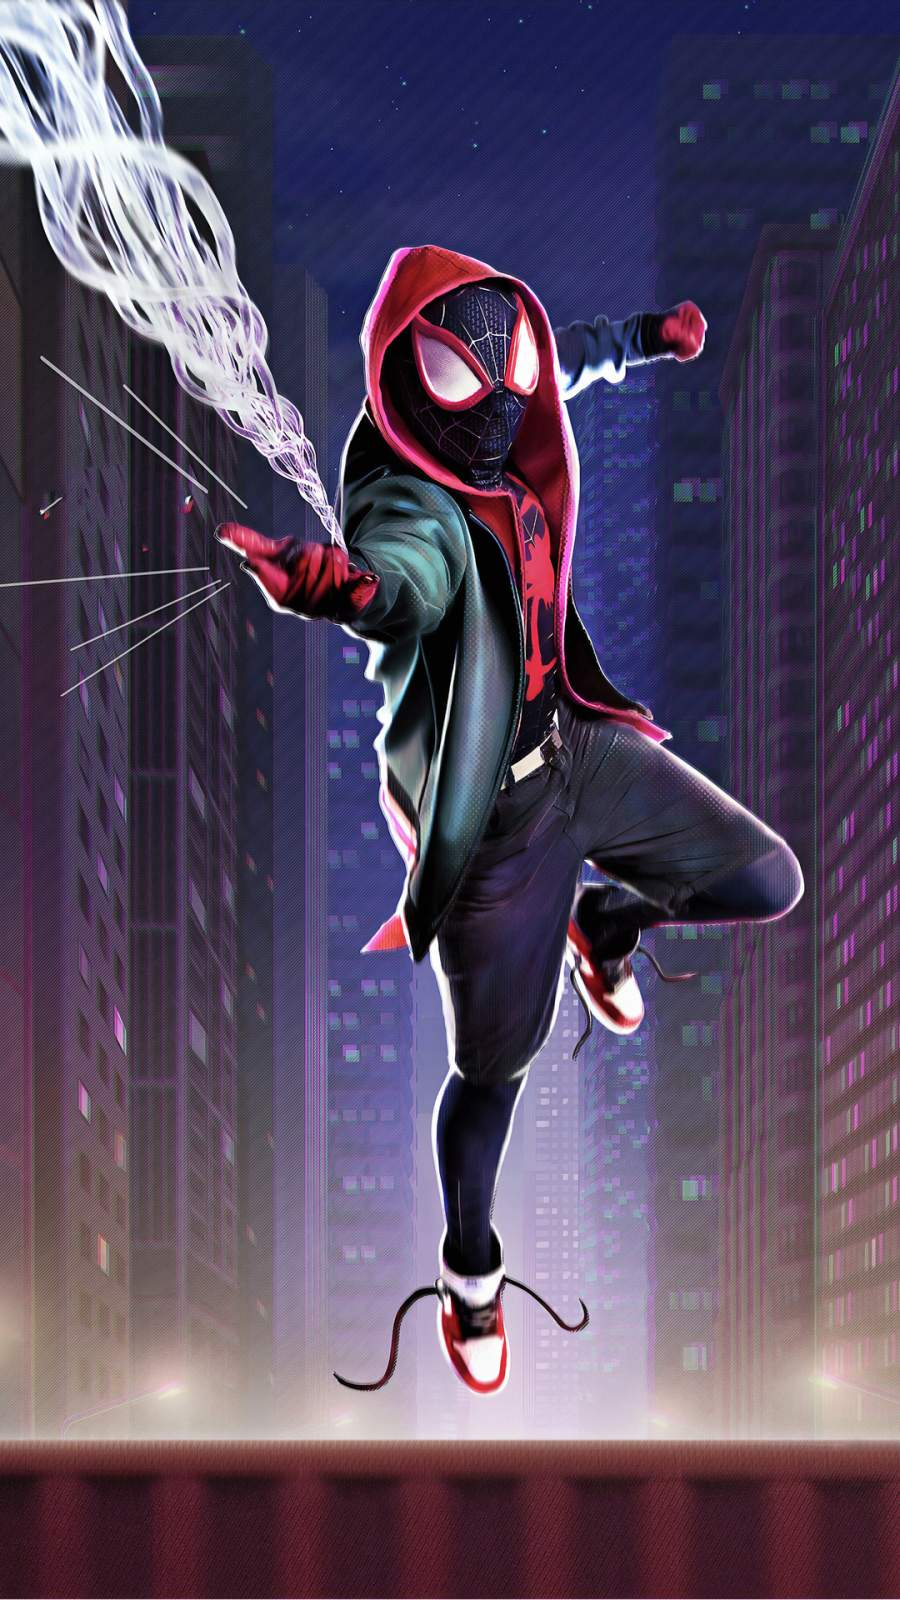 Spiderman Miles Morales Cosplay iPhone Wallpaper